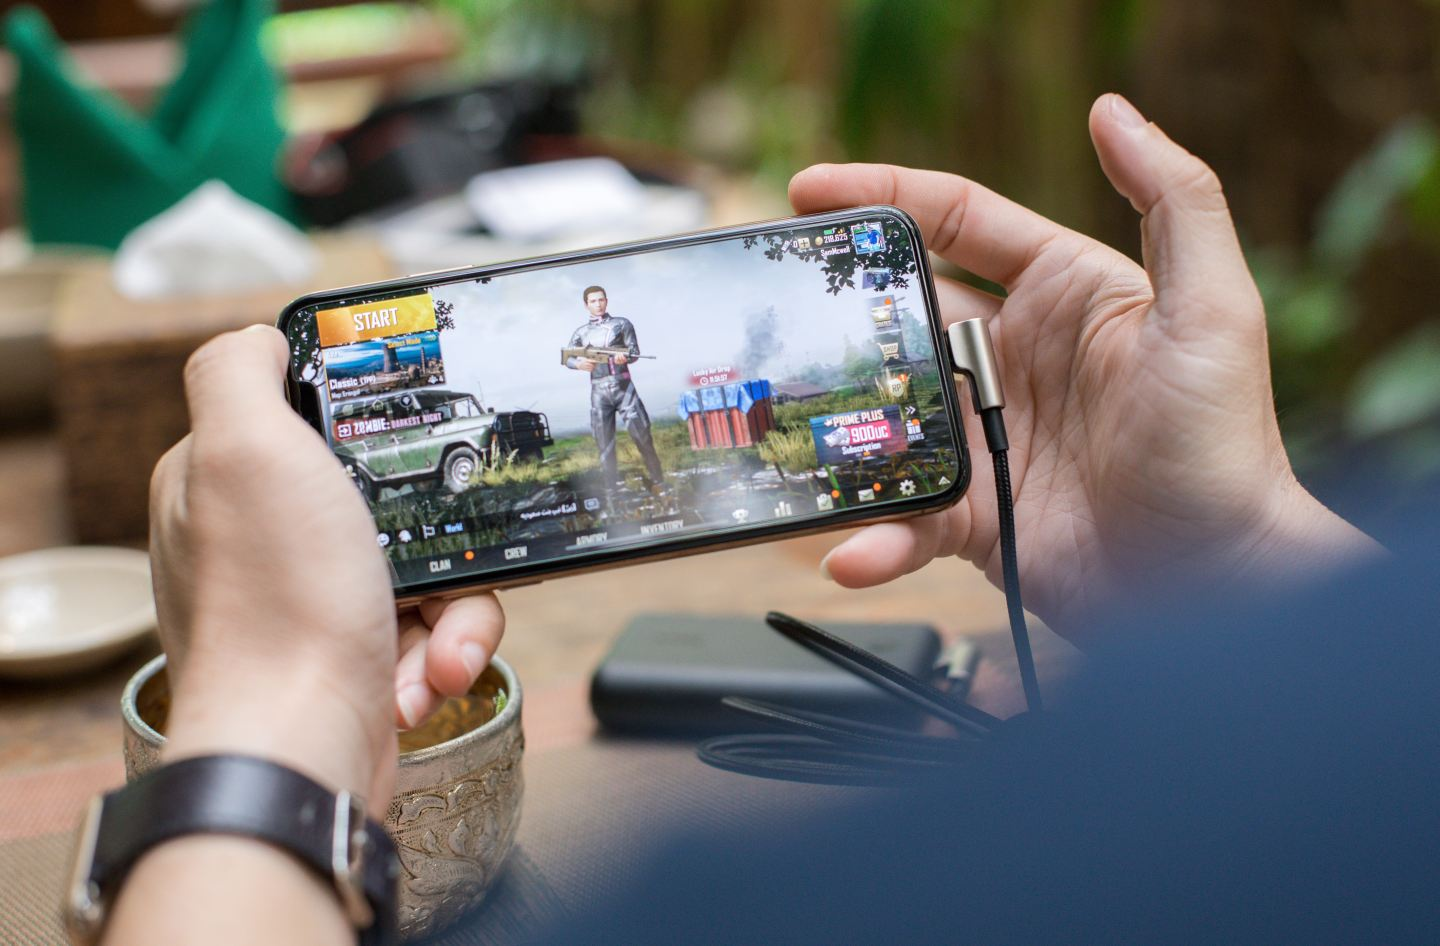 PUBG - mobile gaming on a cell phone